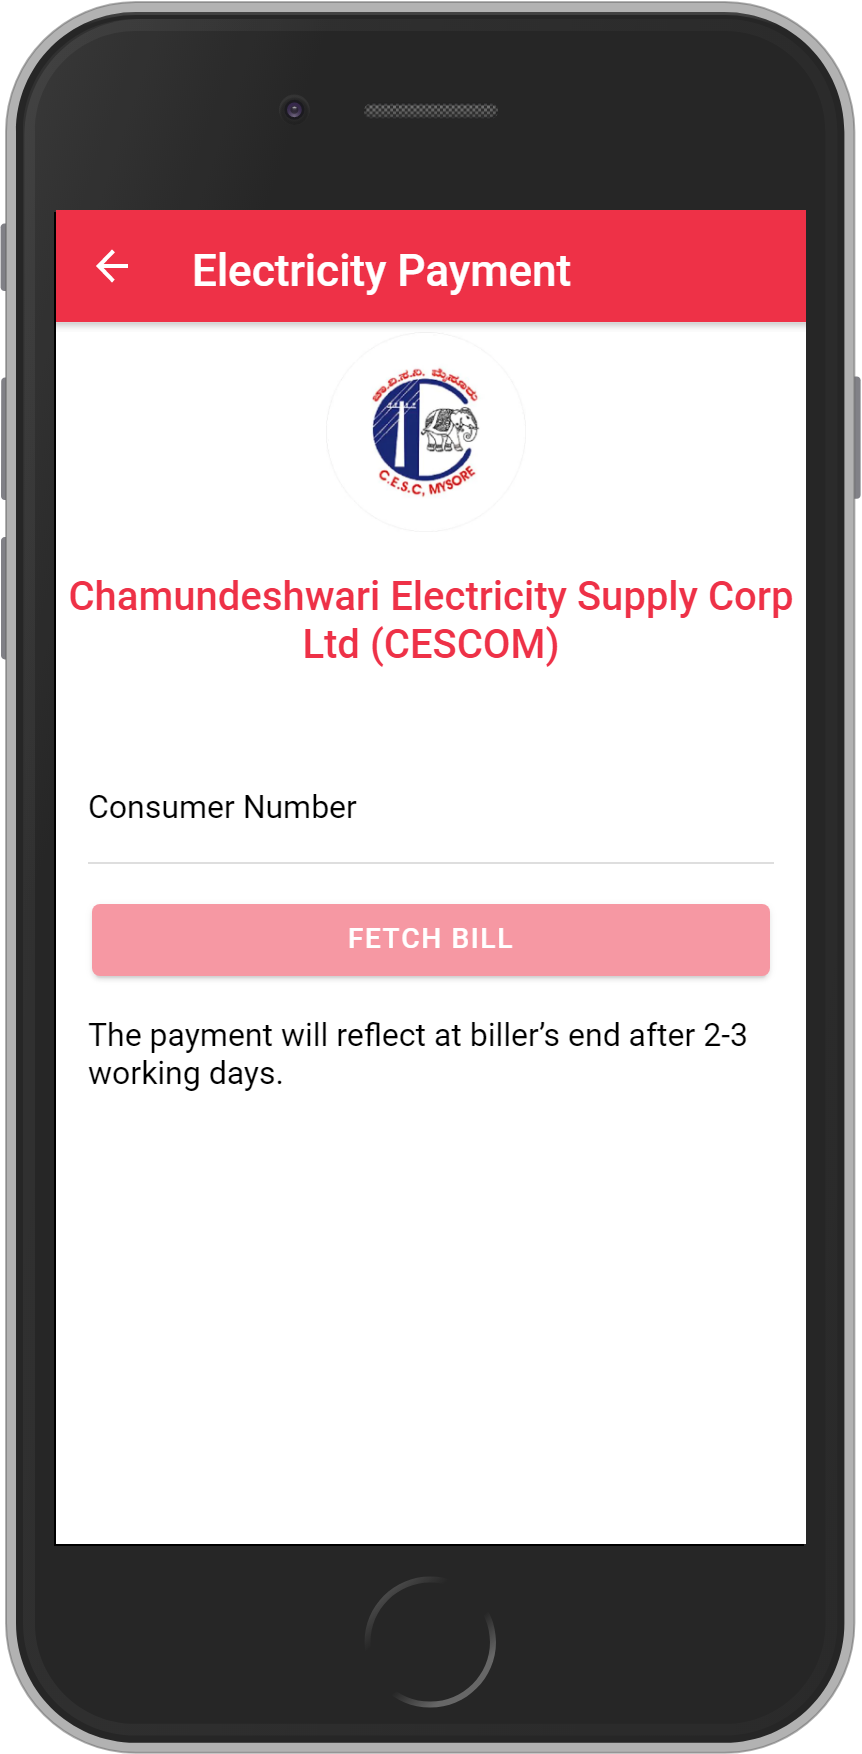 Get UNLIMITED <b>0.1%</b> CASHBACK on Chamundeshwari Electricity Supply Corp Ltd (CESCOM) Bill Payment.